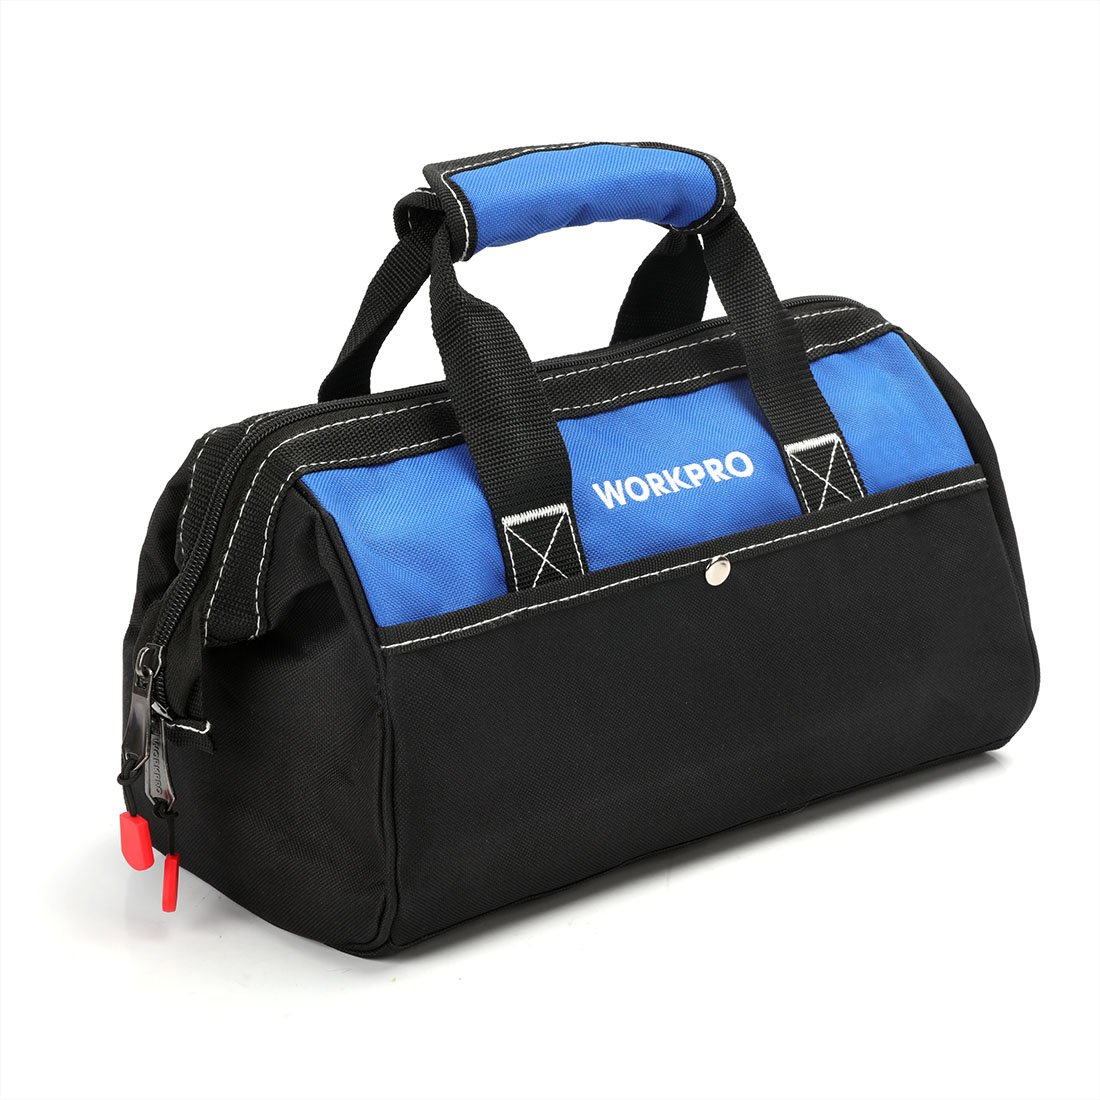 WORKPRO 13-inch Tool Bag, Wide Mouth Tool Tote Bag with Inside Pockets for Tool Storage by WORKPRO